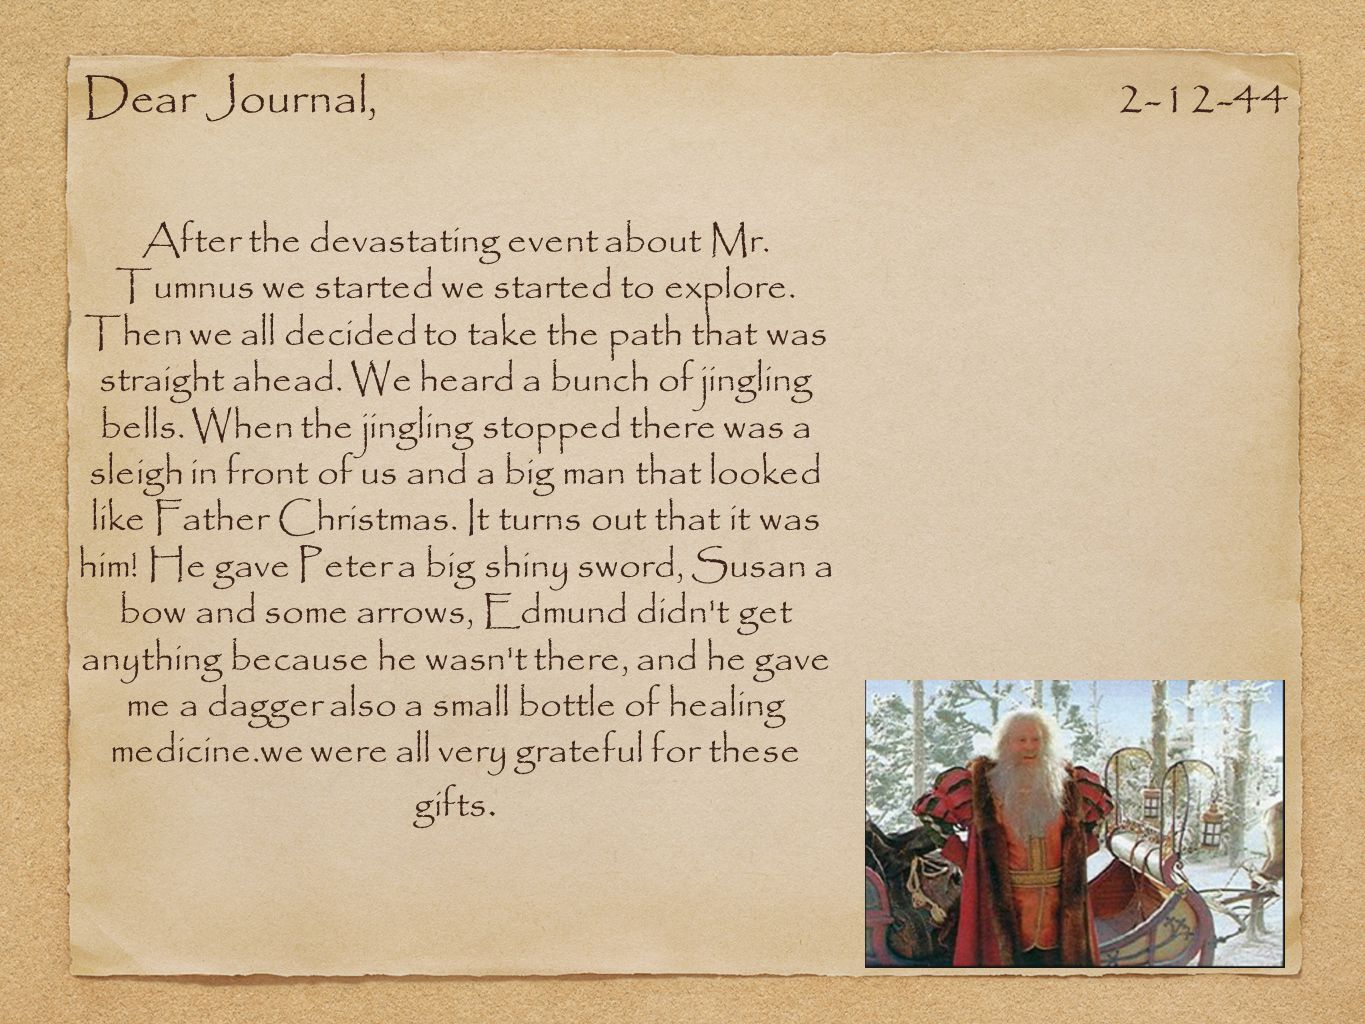 Dear Journal, 2-12-44.